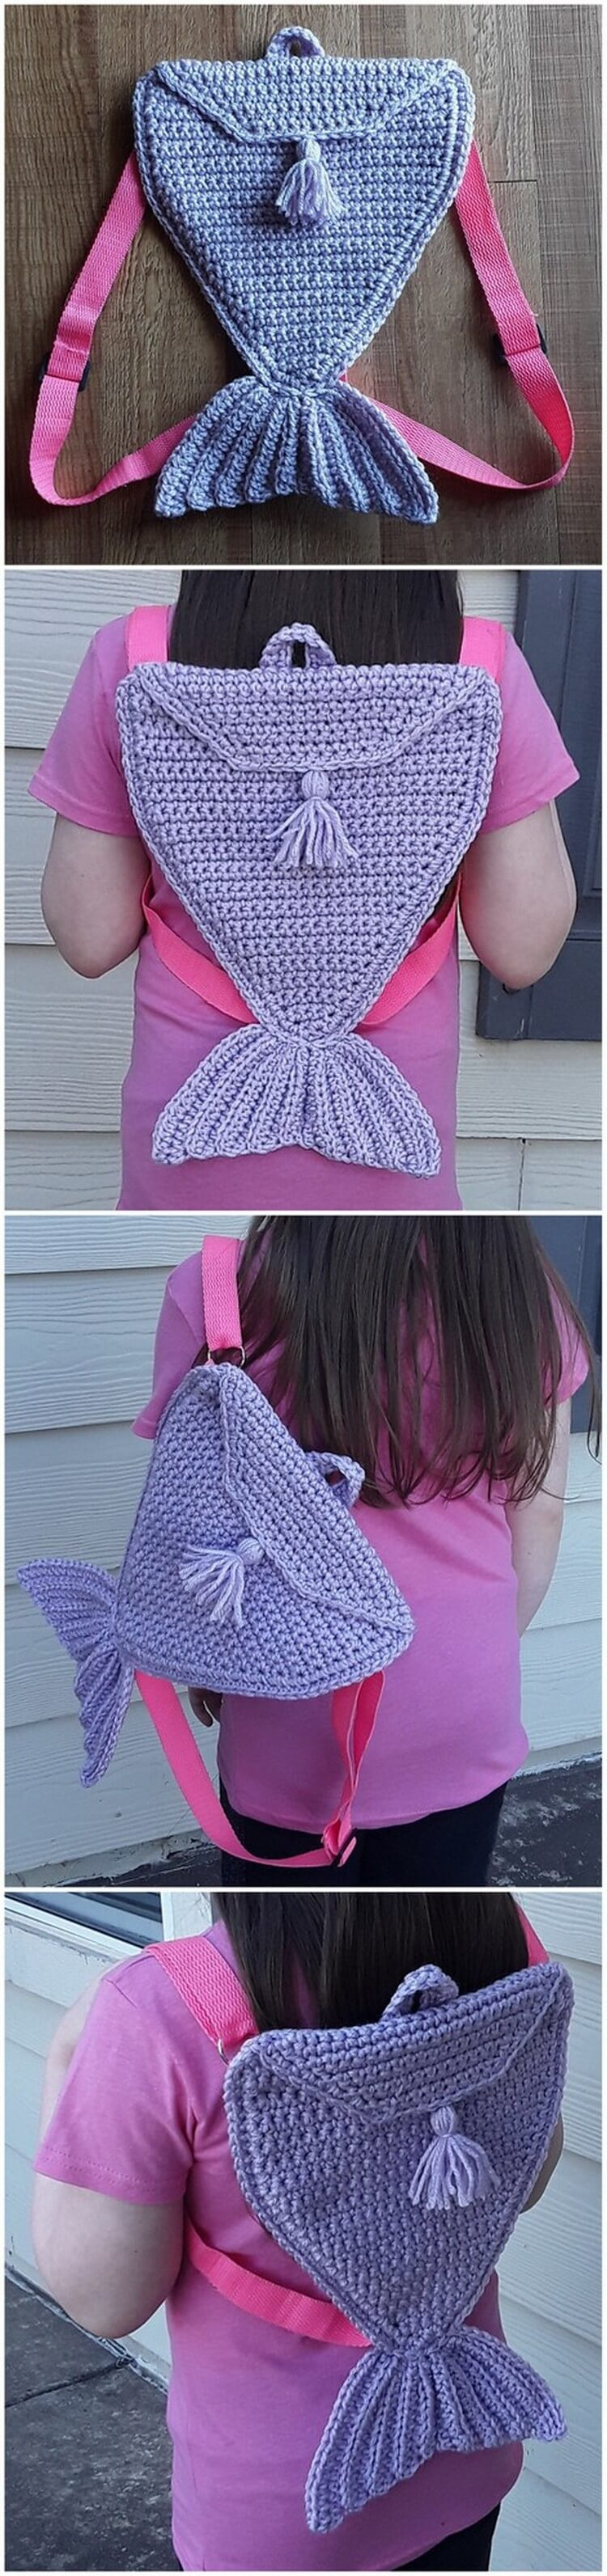 Crochet Backpack Pattern (23)